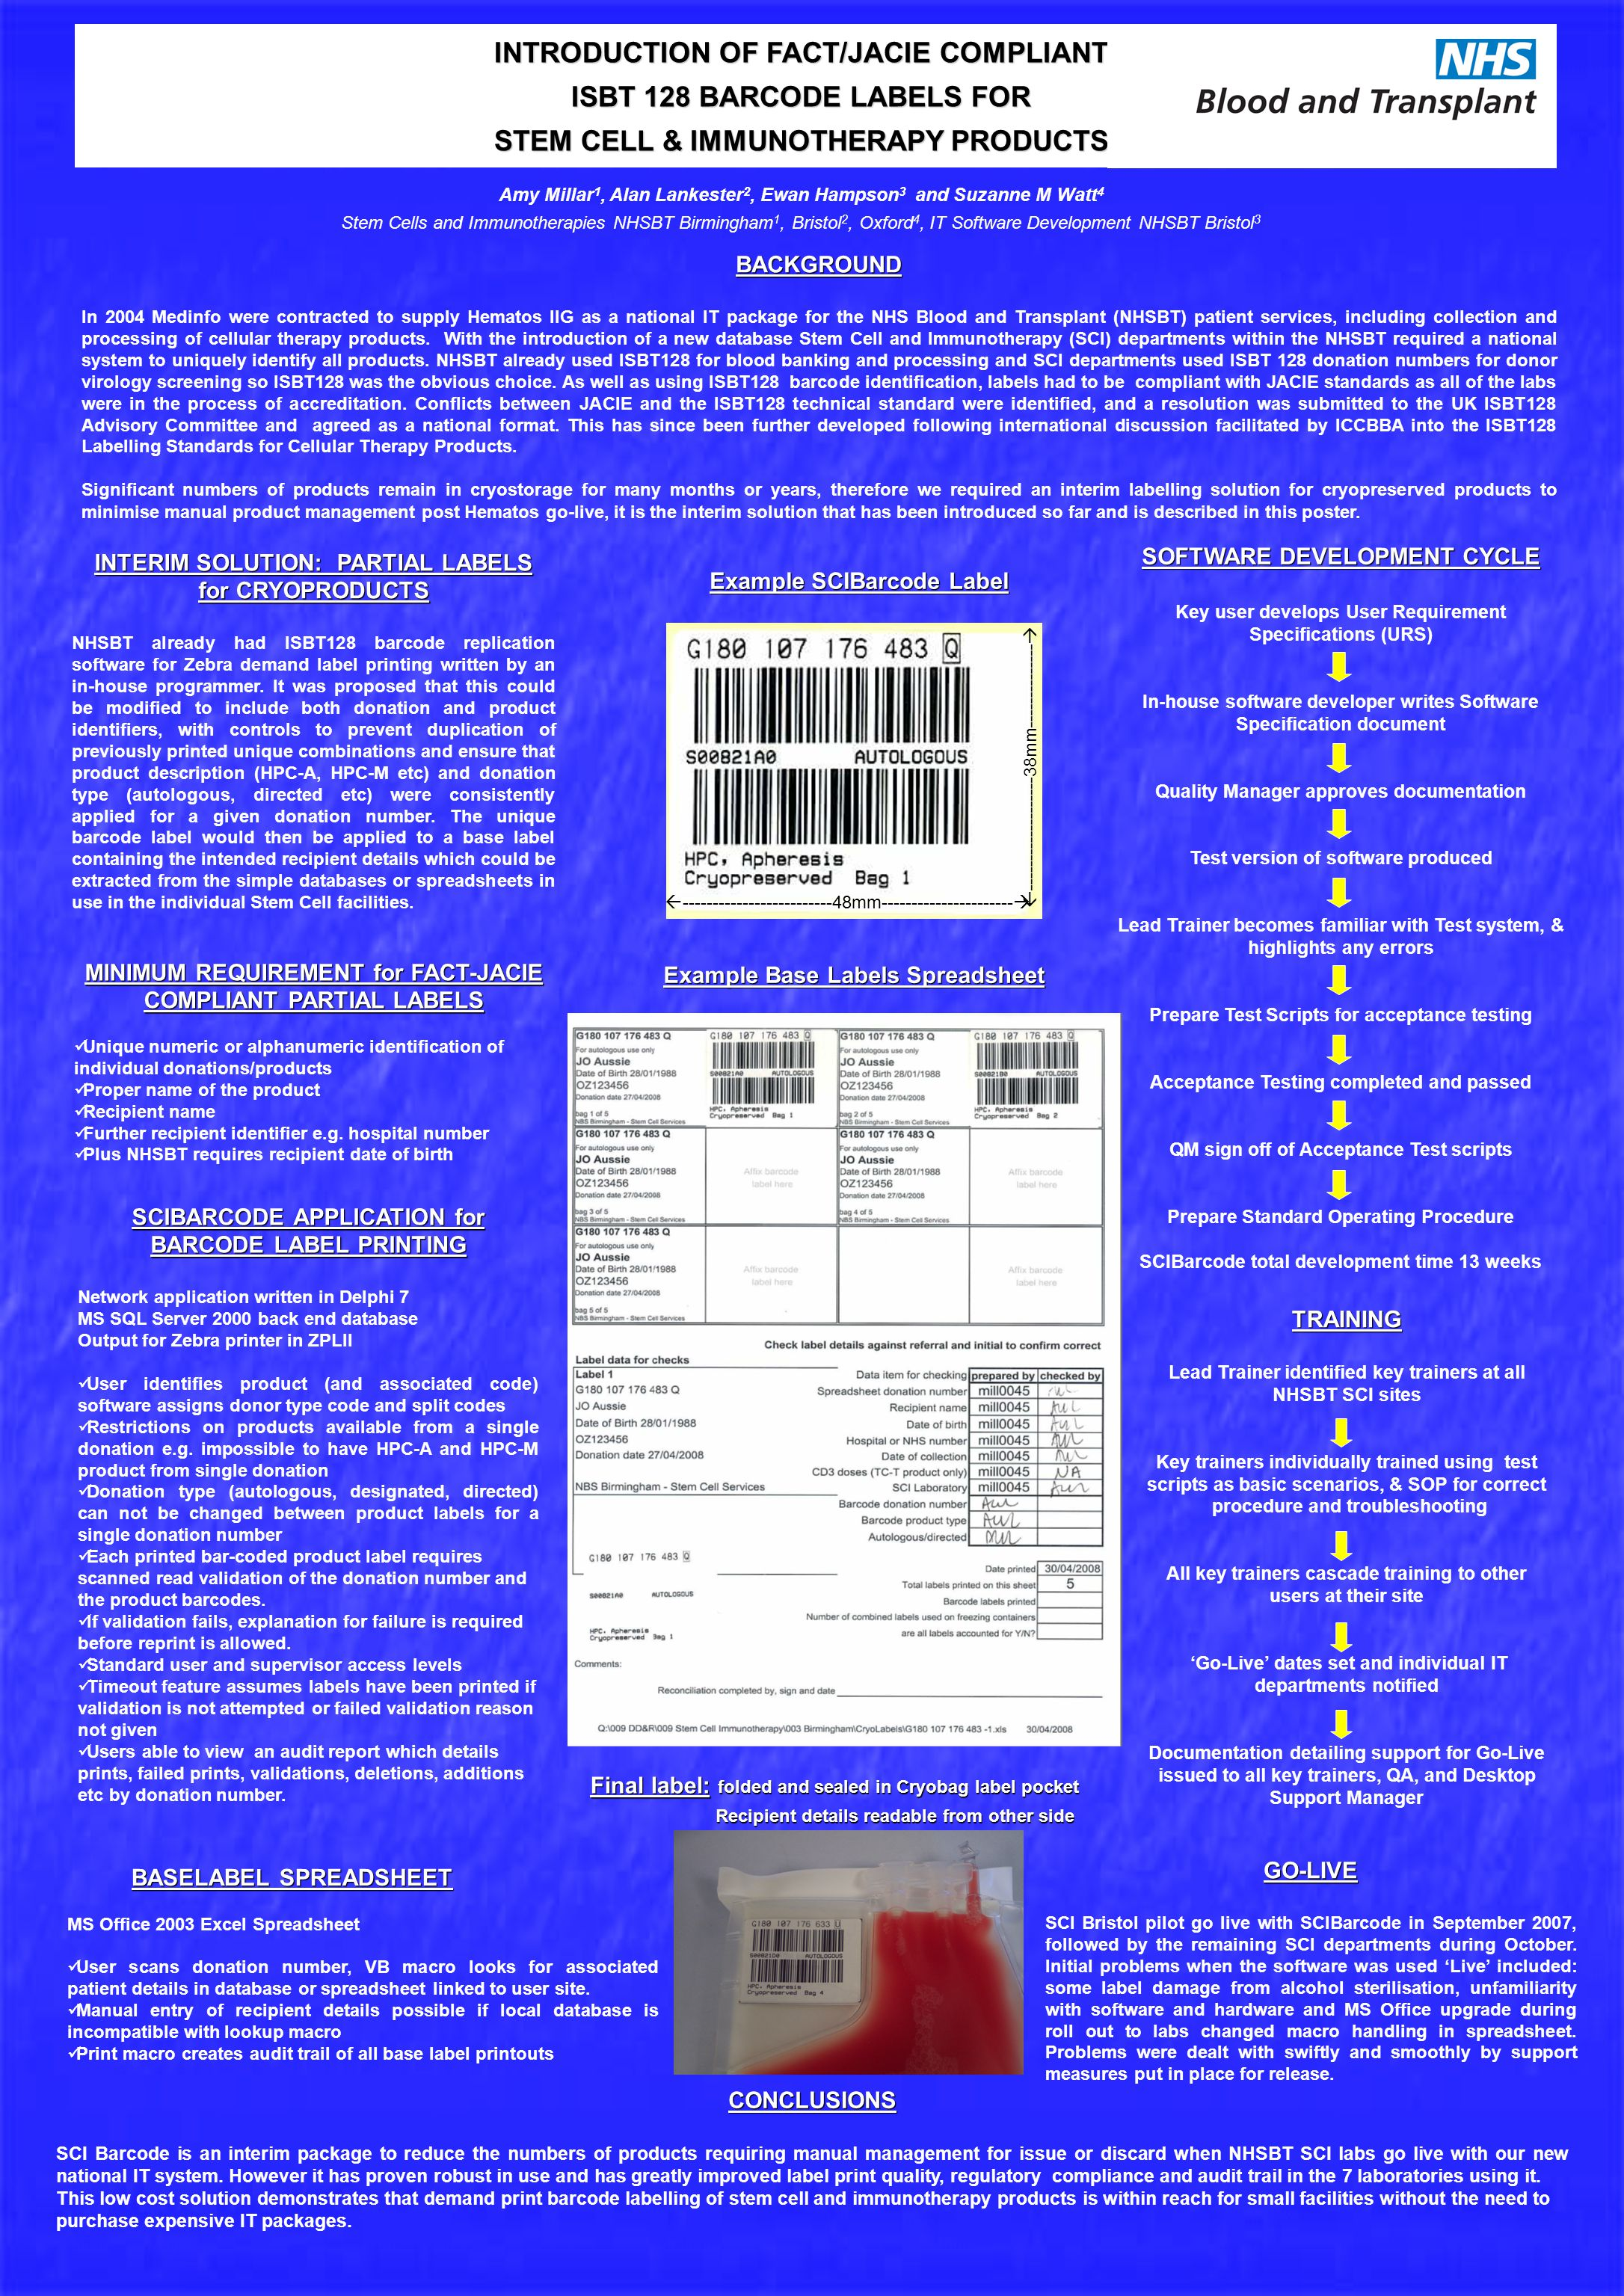 INTRODUCTION OF FACT/JACIE COMPLIANT ISBT 128 BARCODE LABELS FOR